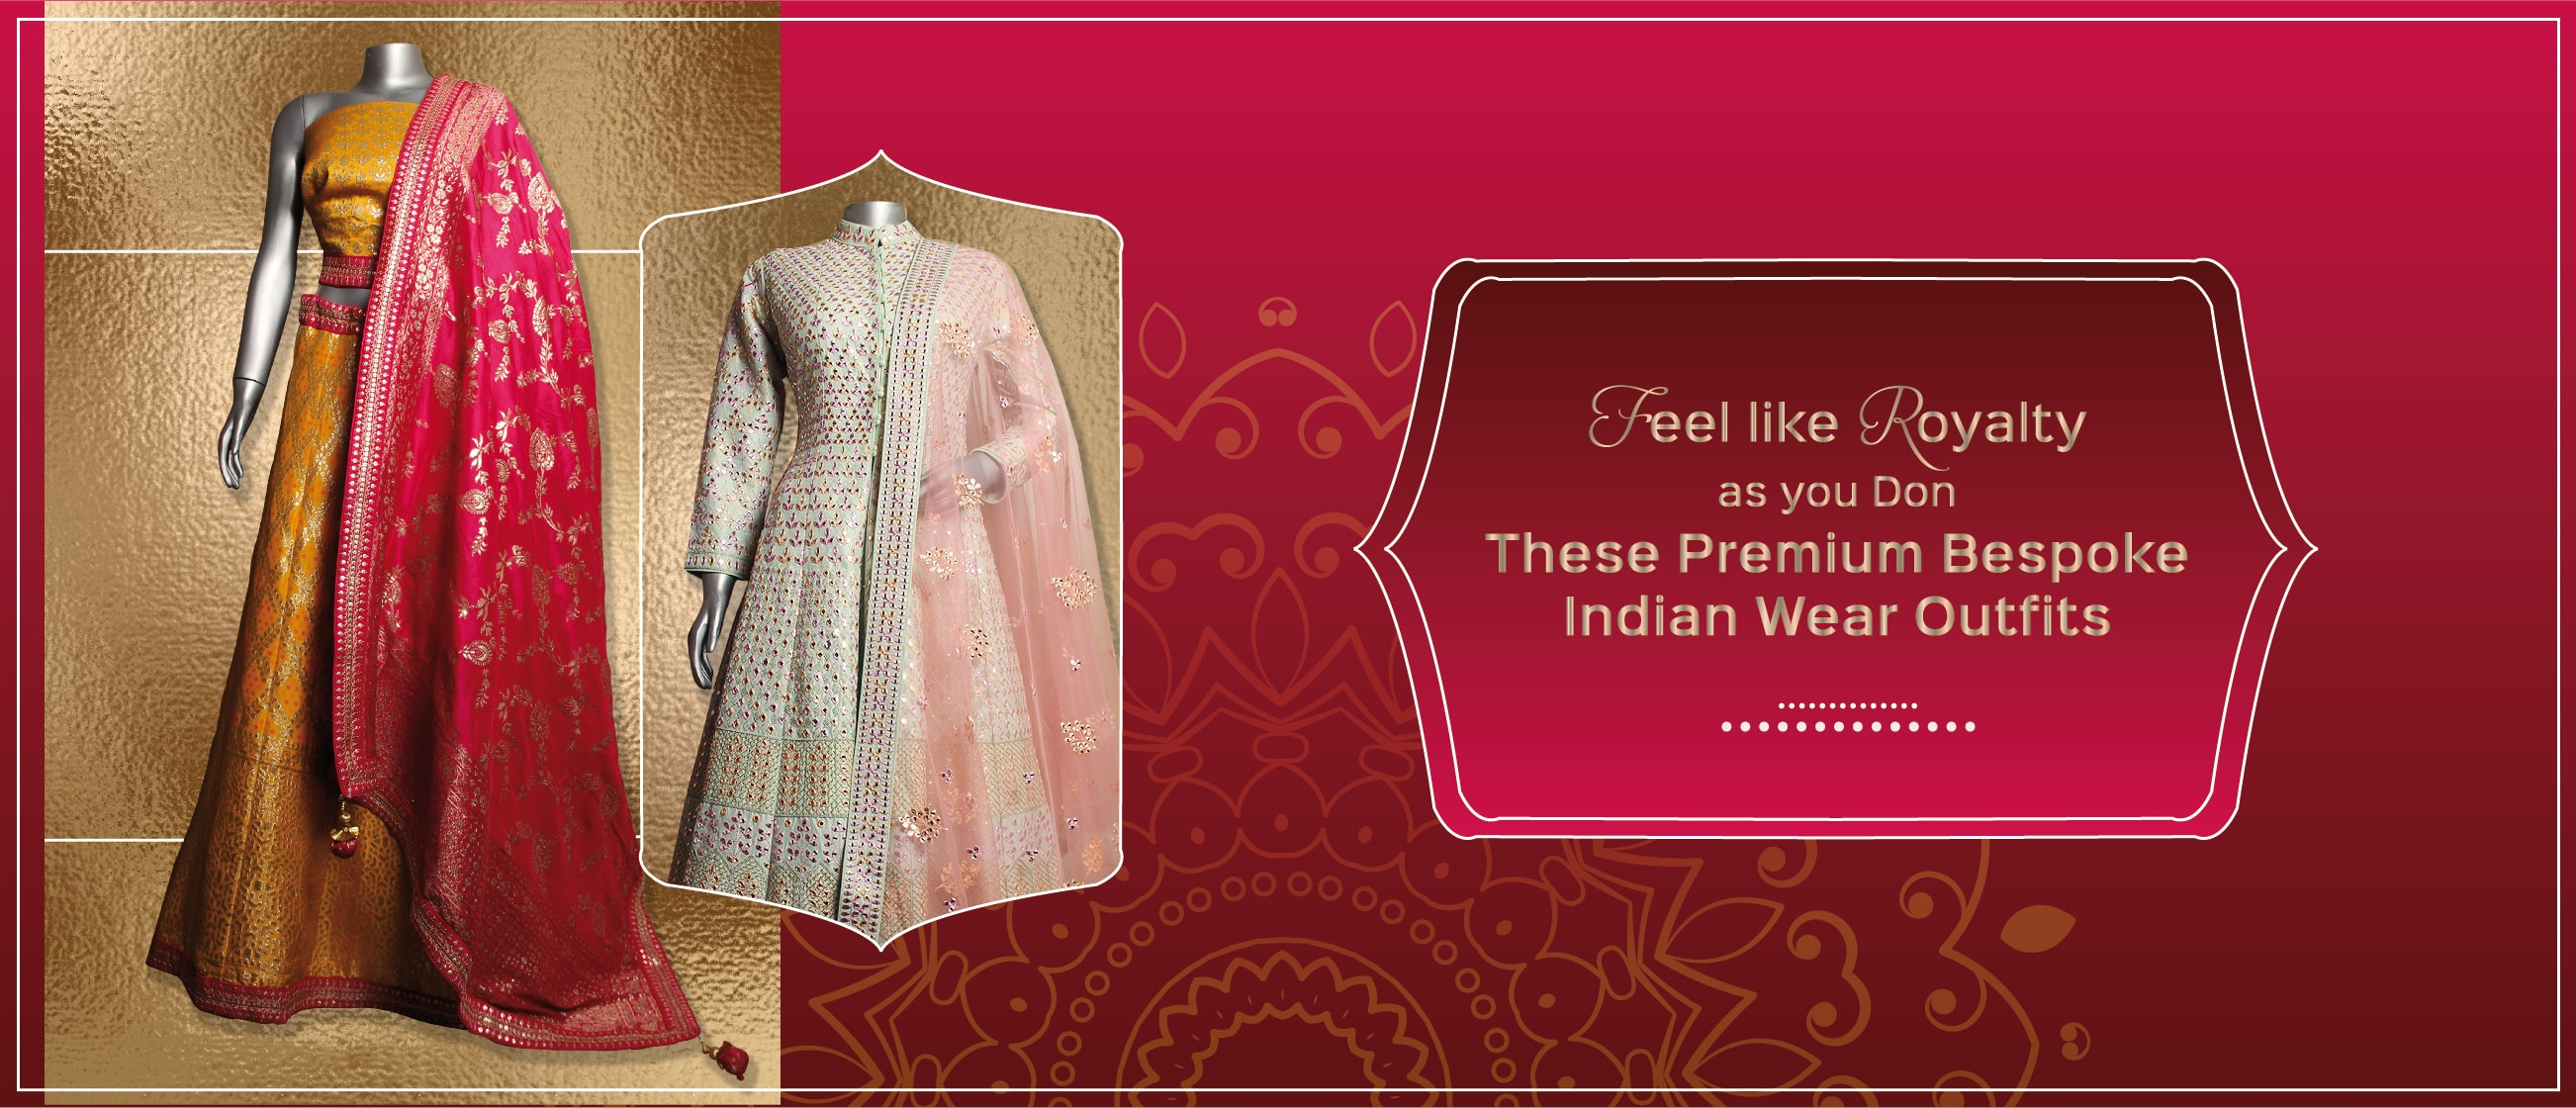 Feel like Royalty as you Don These Premium Bespoke Indian Wear Outfits